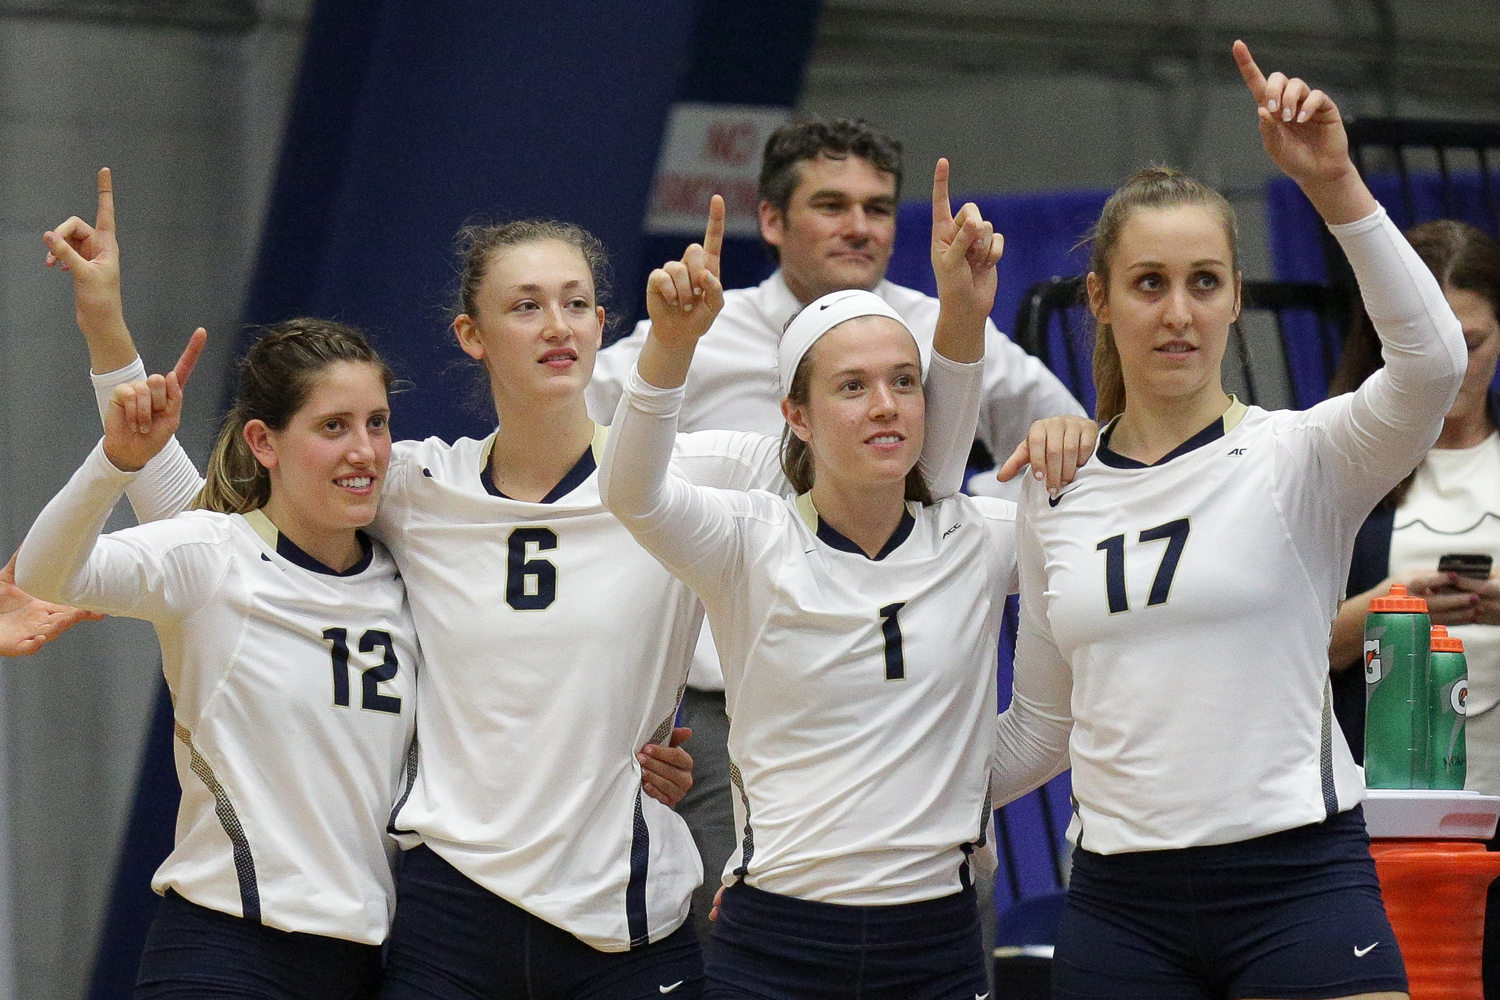 Women's volleyball is one of Pitt's best sports teams.